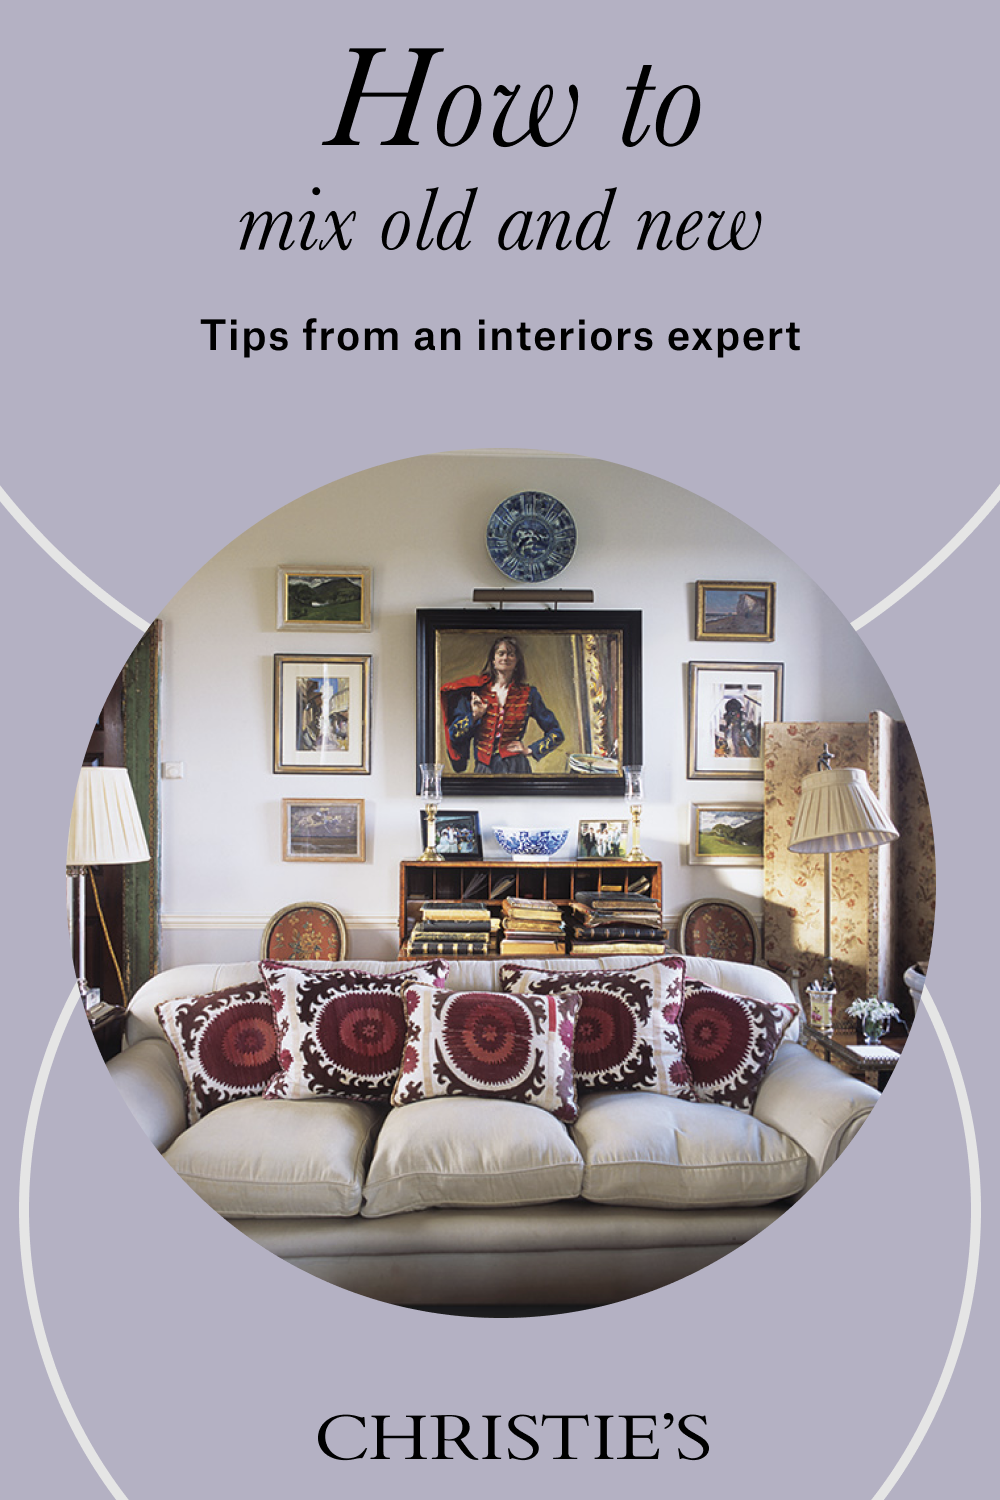 Interiors: How to mix old and new | Christie's